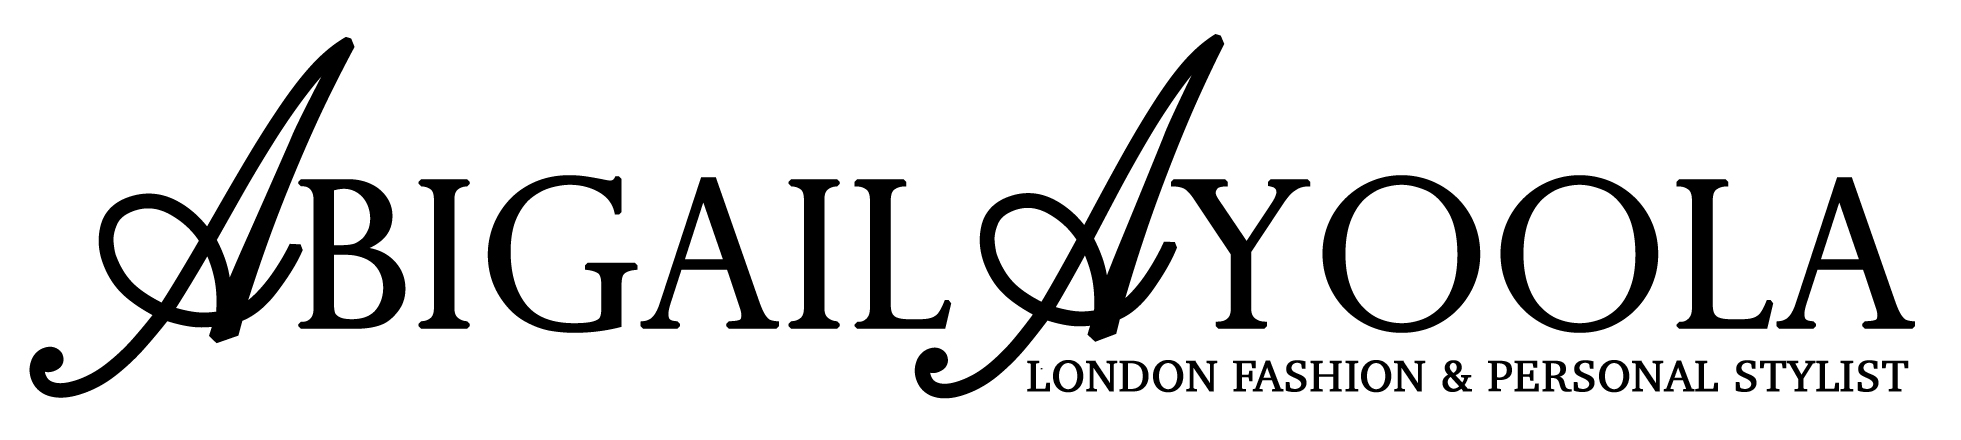 Fashion & Personal Stylist London